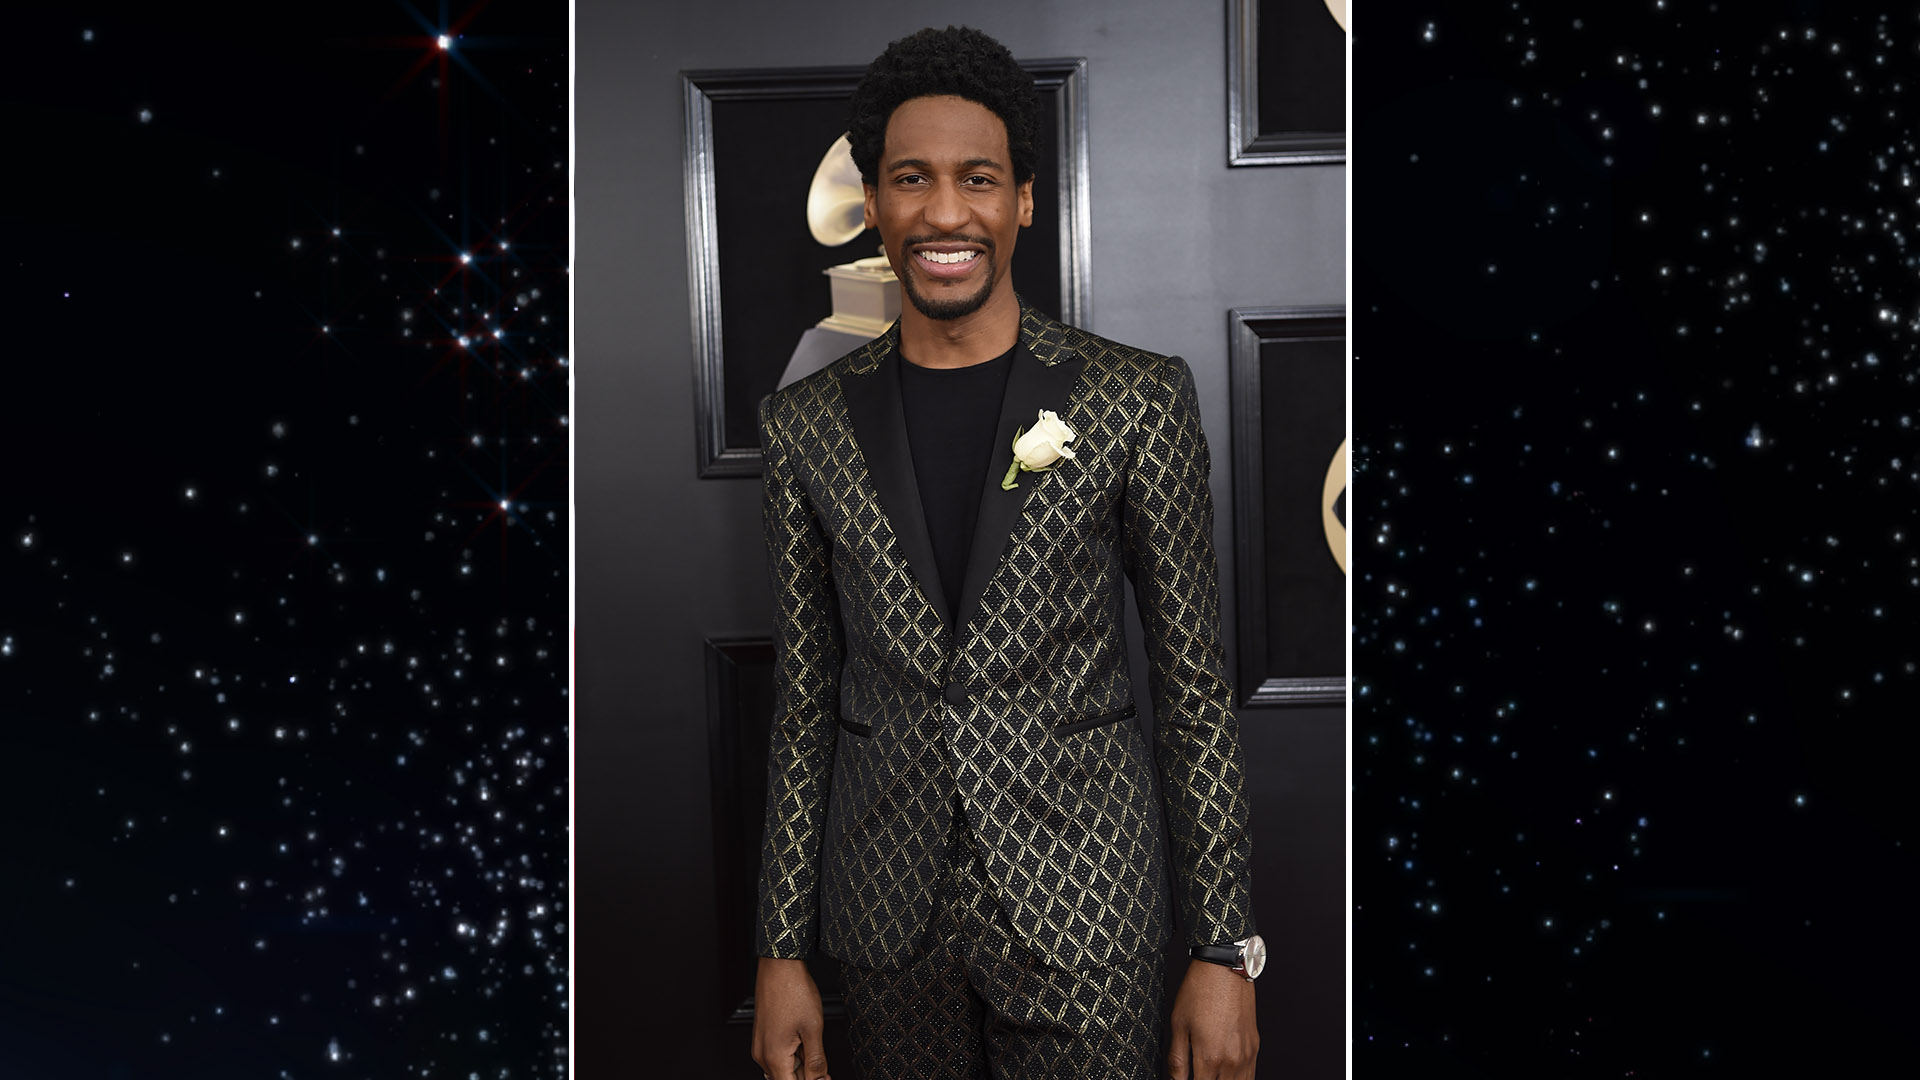 The Late Show with Stephen Colbert bandleader Jon Batiste is all smiles before taking the stage to pay tribute to Chuck Berry and Fats Domino.